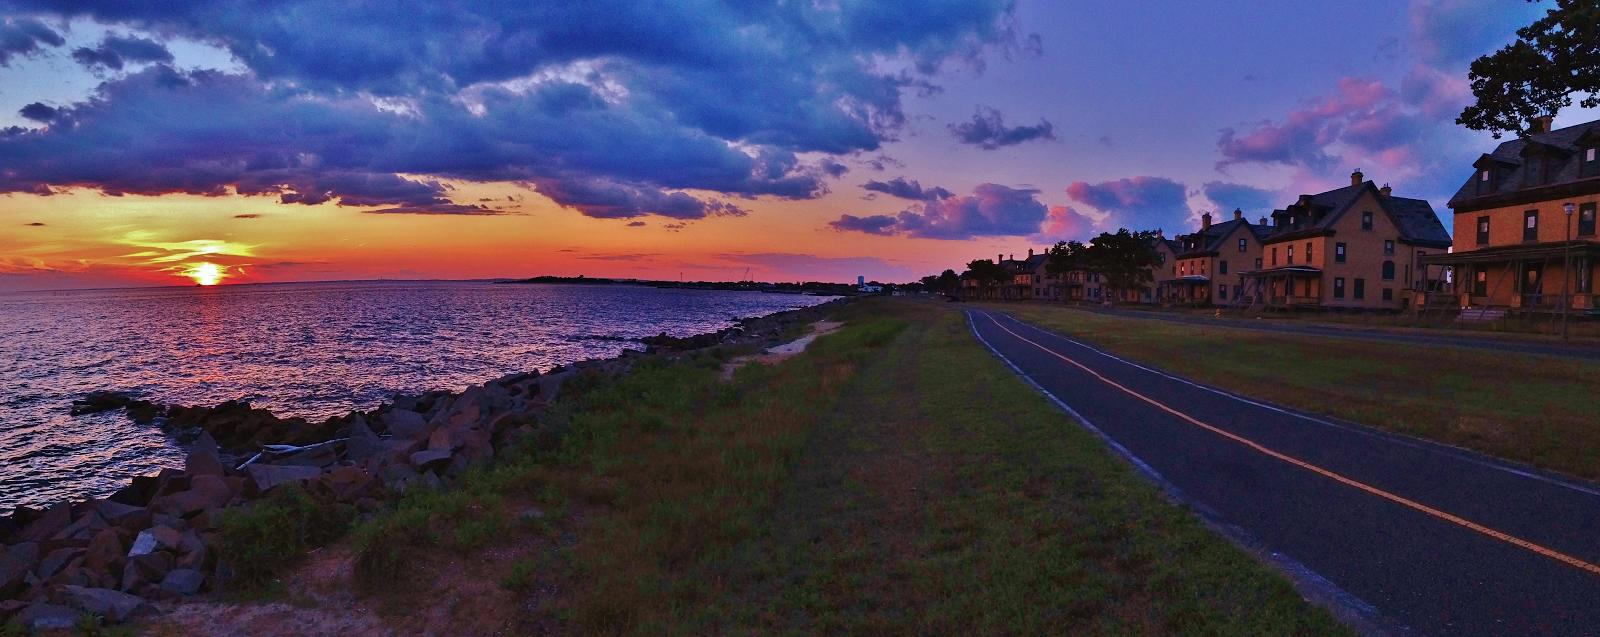 Paternoster, Michael J Officers Row  Water Sunset Winner of Gateway's 2015 Photo Contest